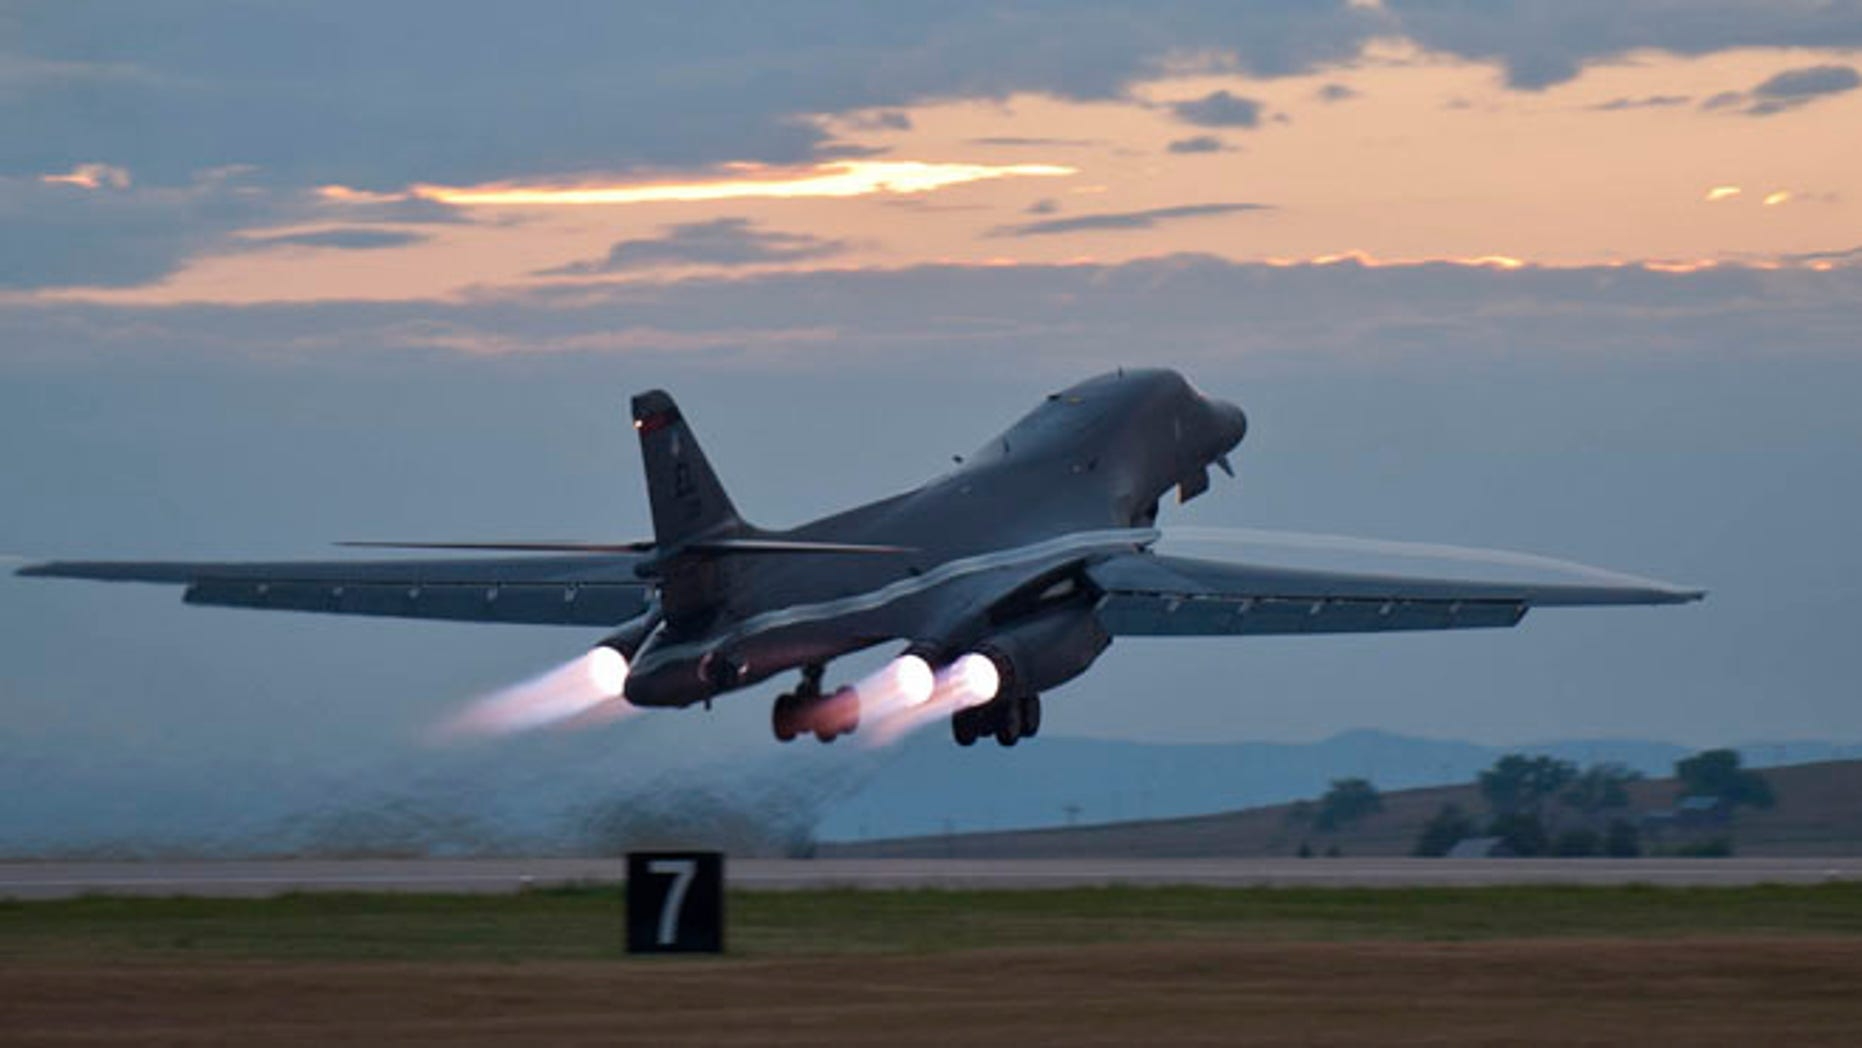 July 24, 2012: An Air Force  B-1 bomber rumbling down the flightline at Ellsworth Air Force Base, S.D., as part of a training mission.